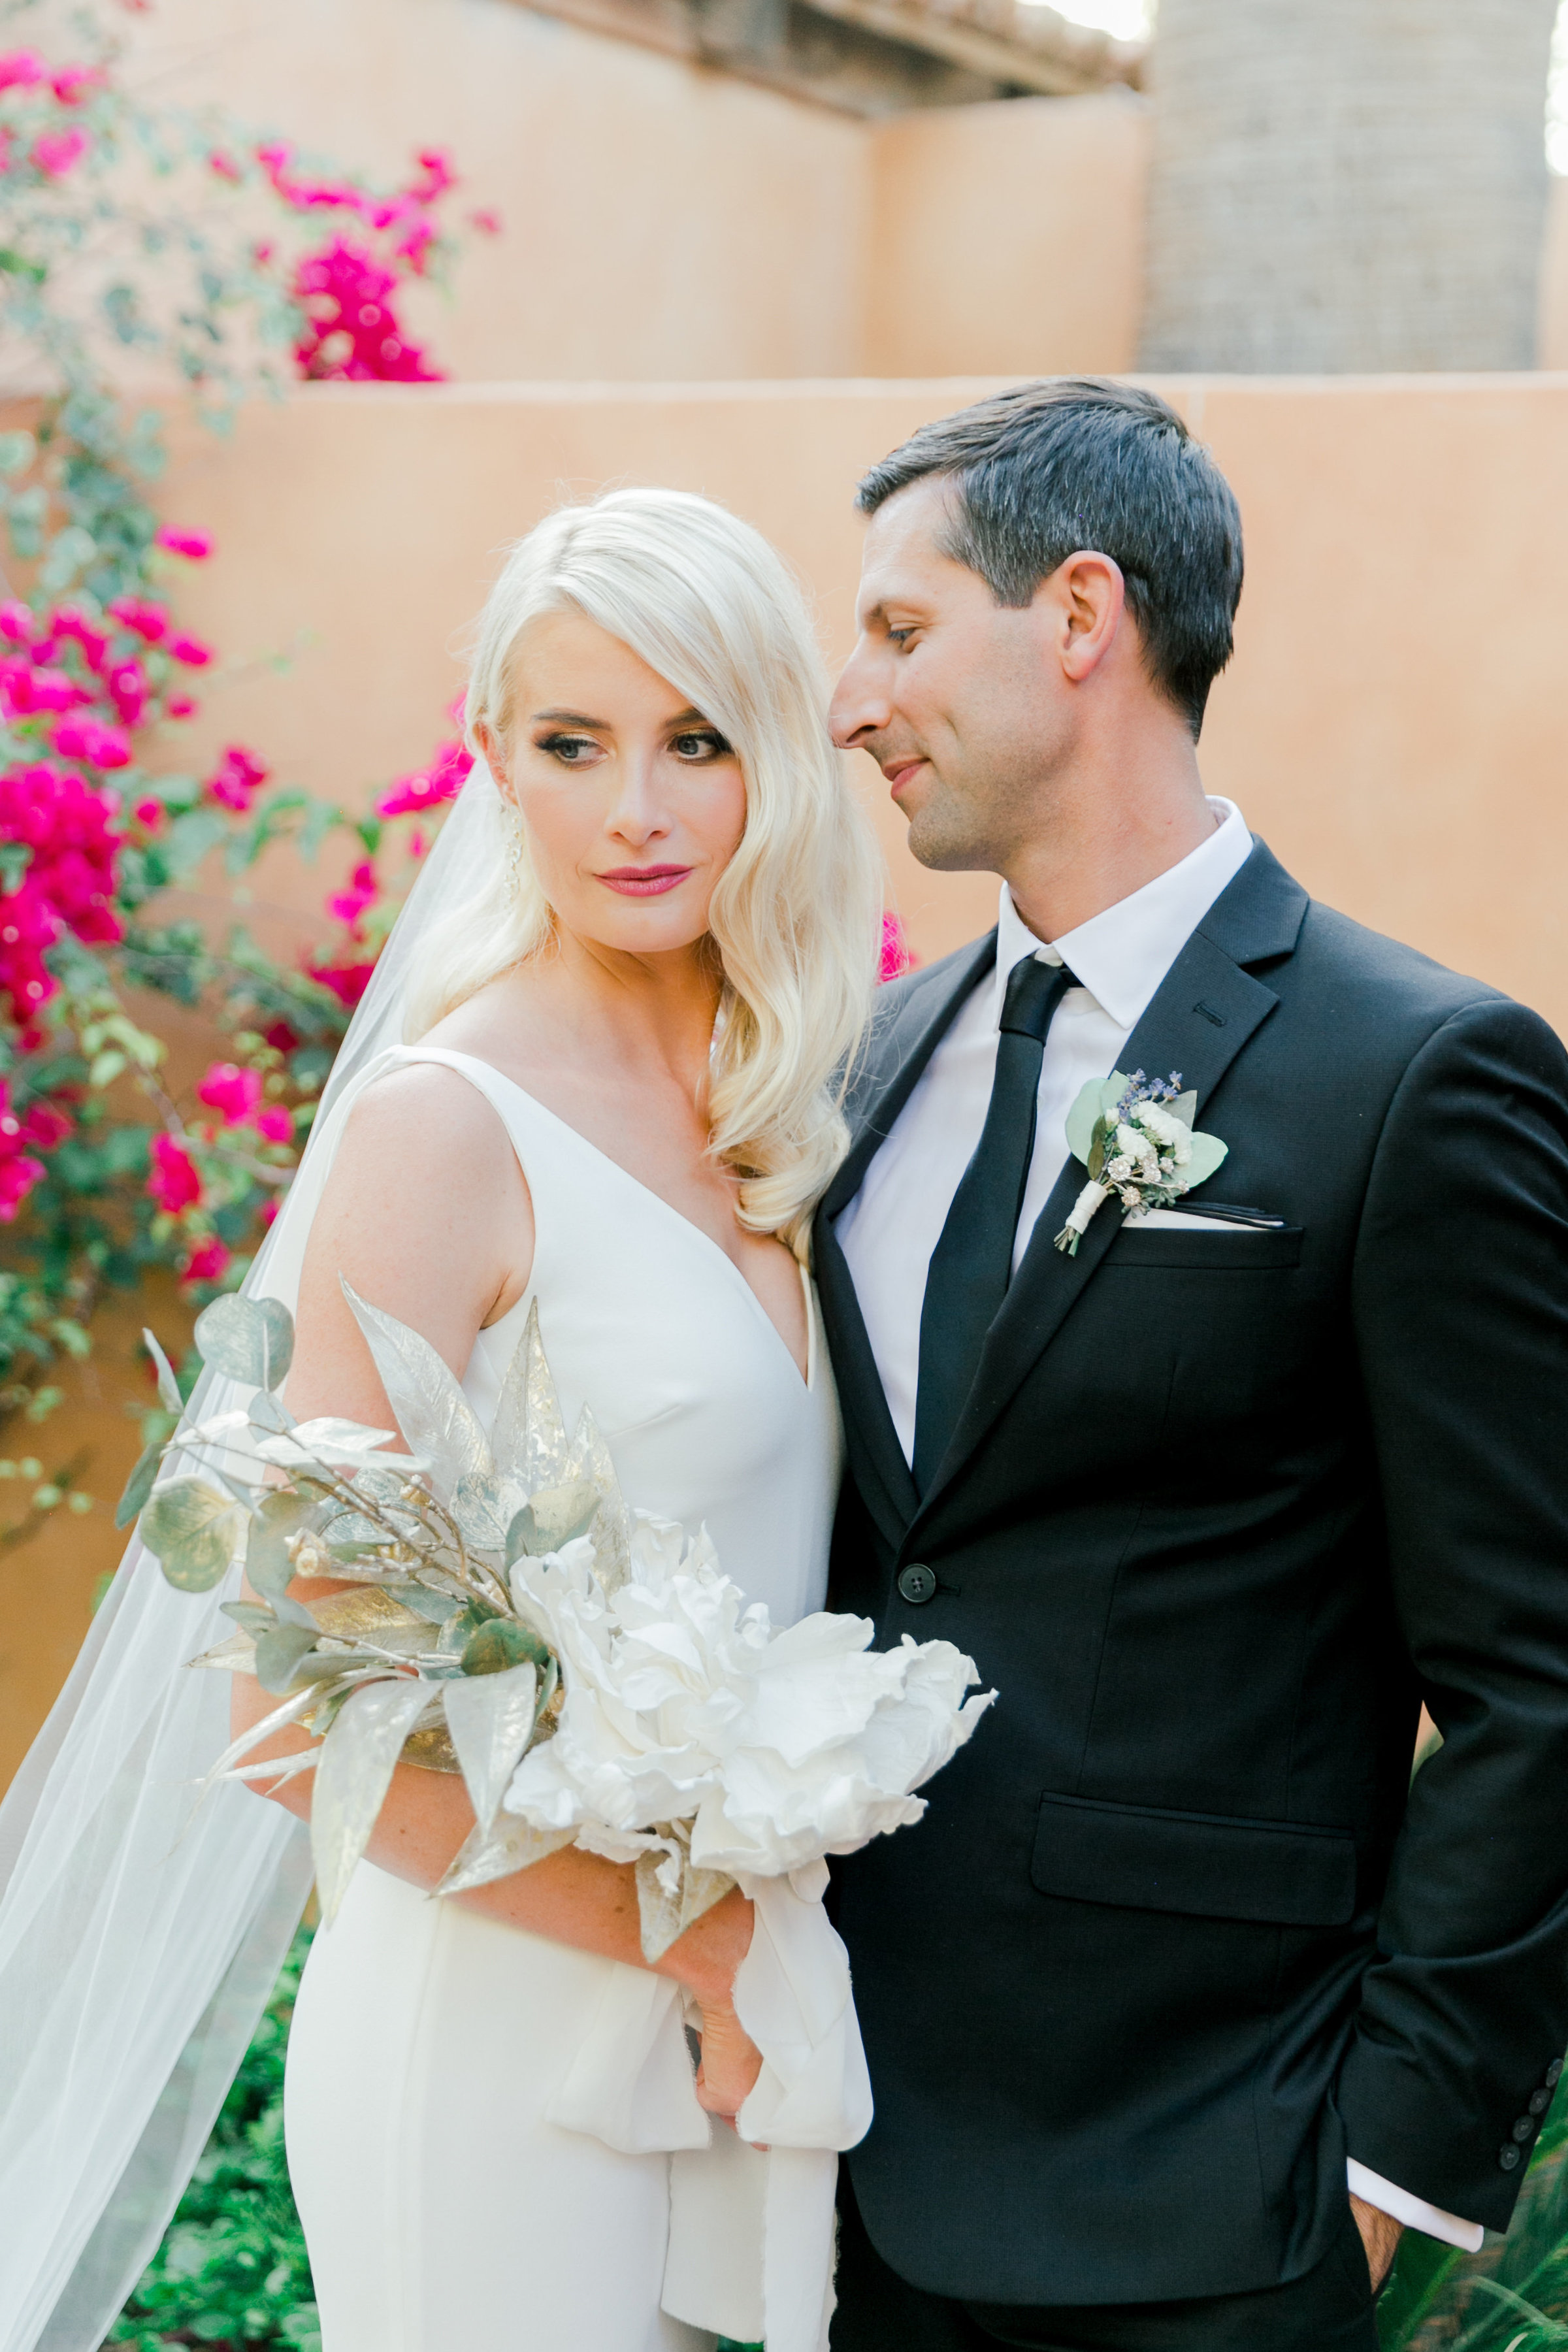 Karlie Colleen Photography - Arizona Wedding - Royal Palms Resort- Alex & Alex-113